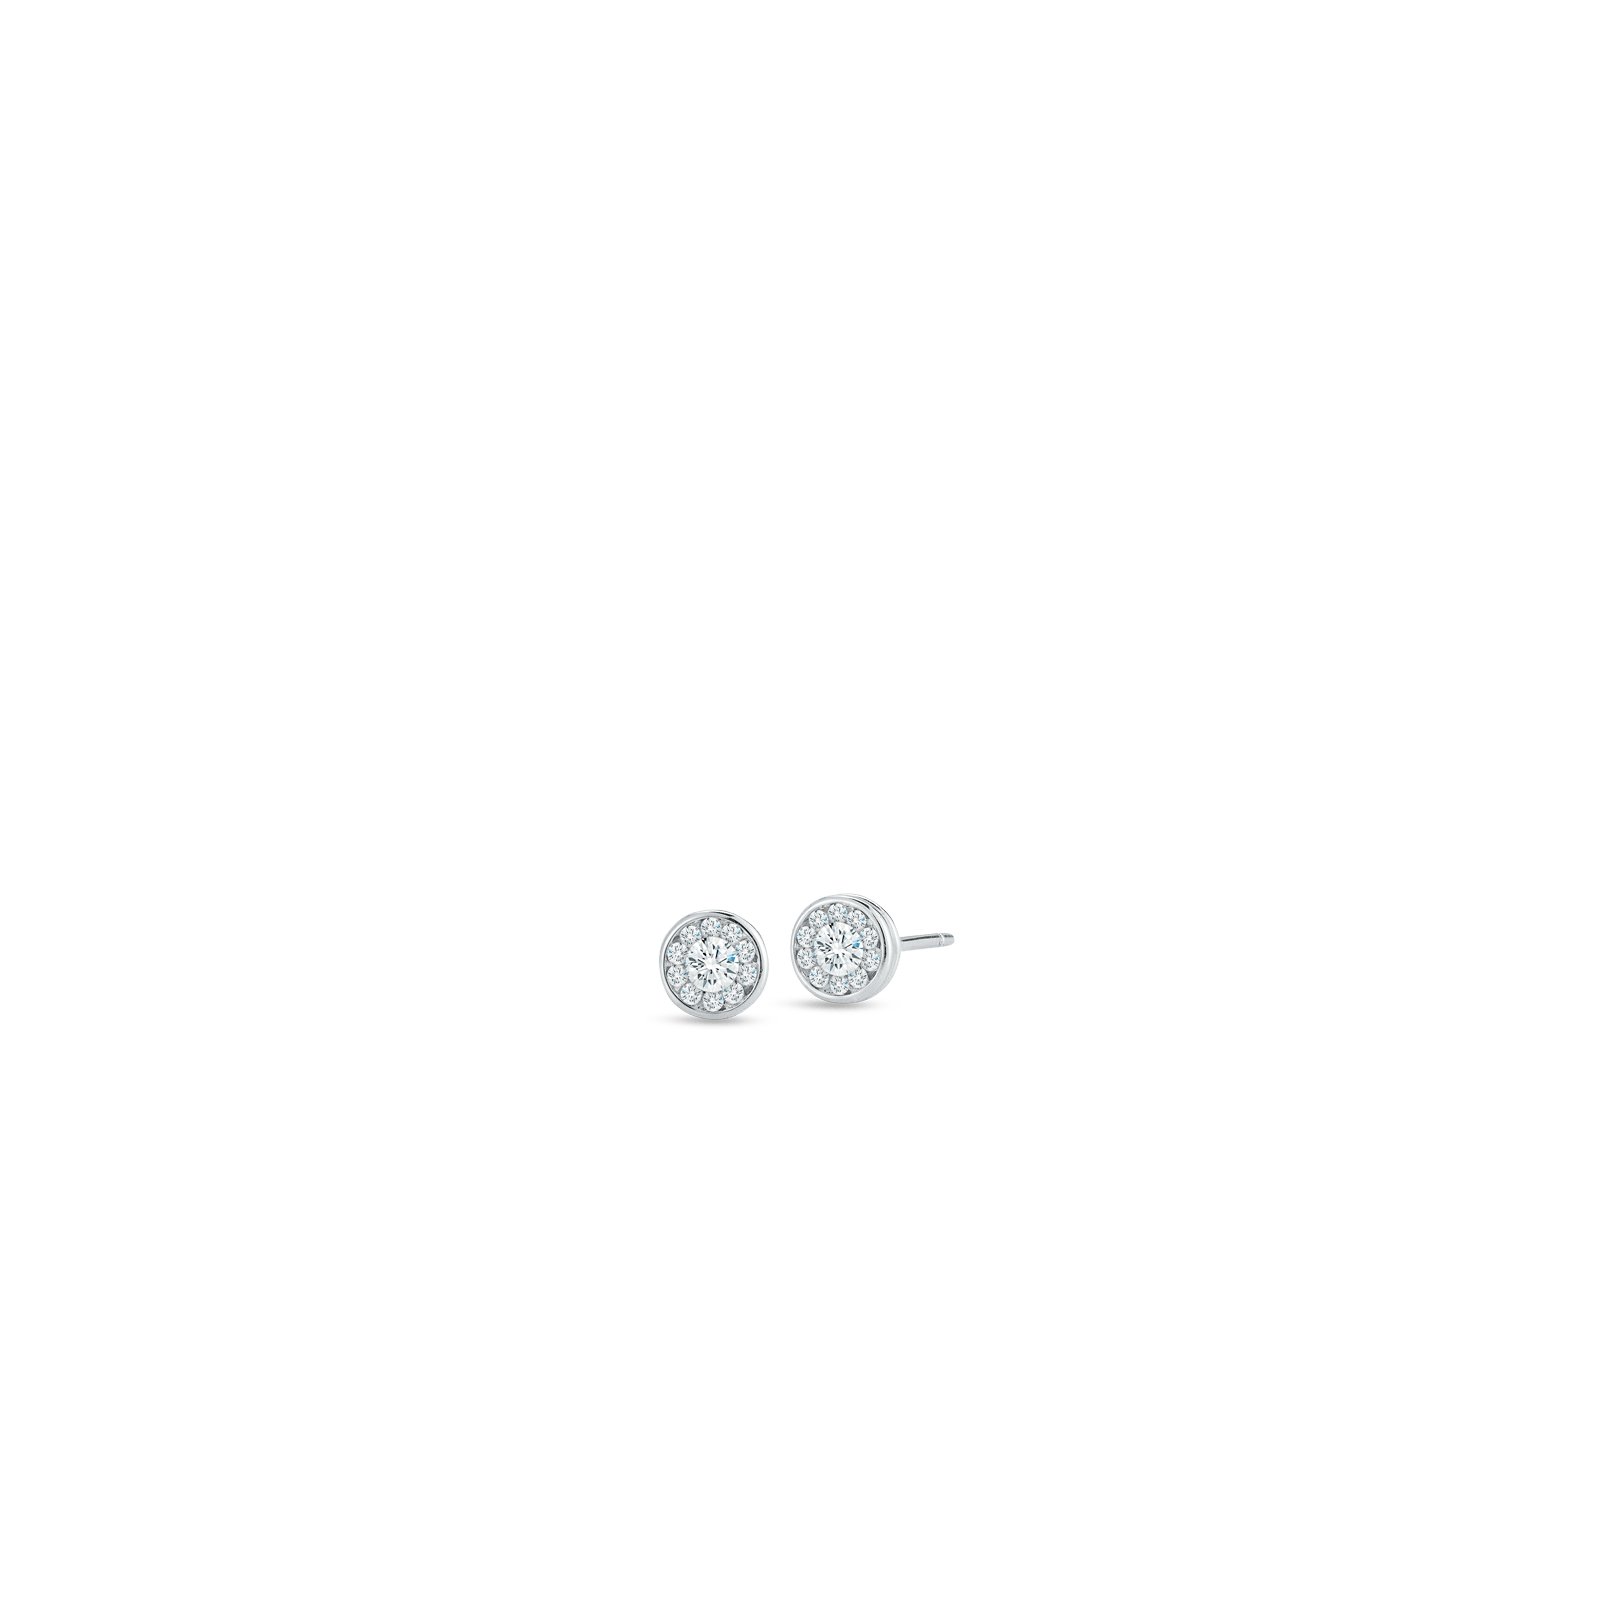 Purchase Classic Diamonds Gold Stud Earrings with Diamonds